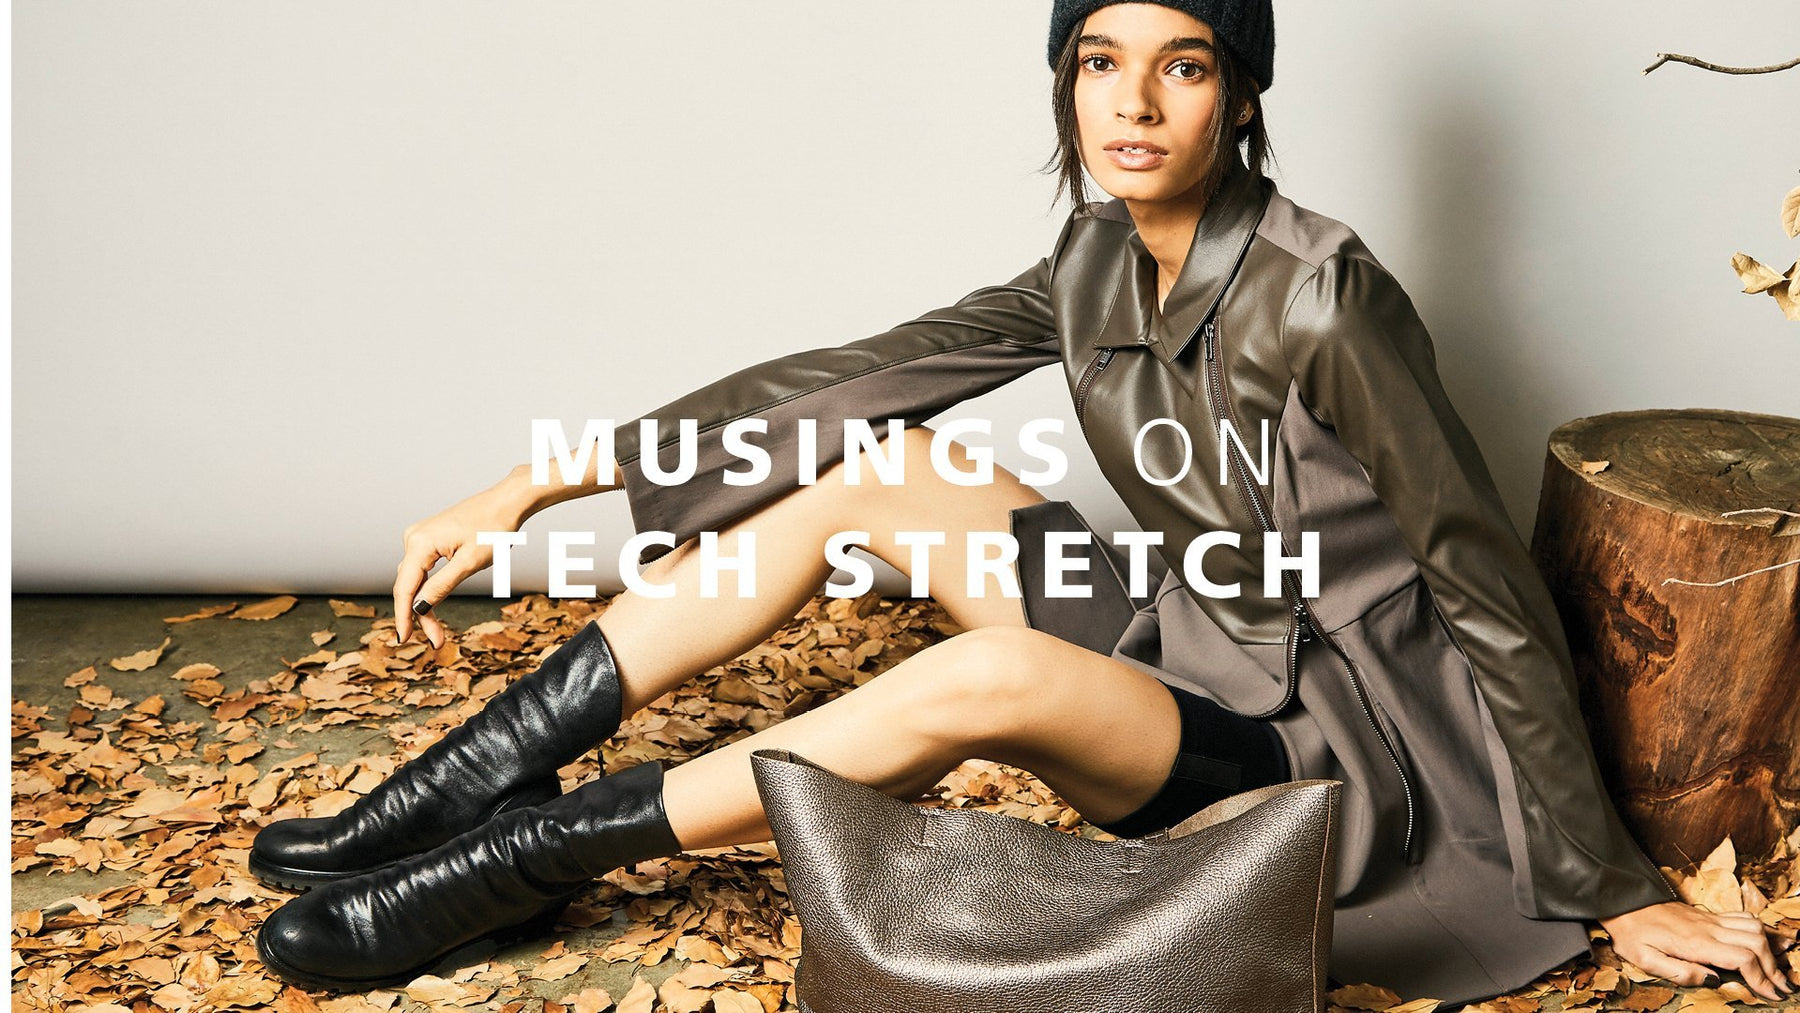 Clothing - Musings on Tech Stretch